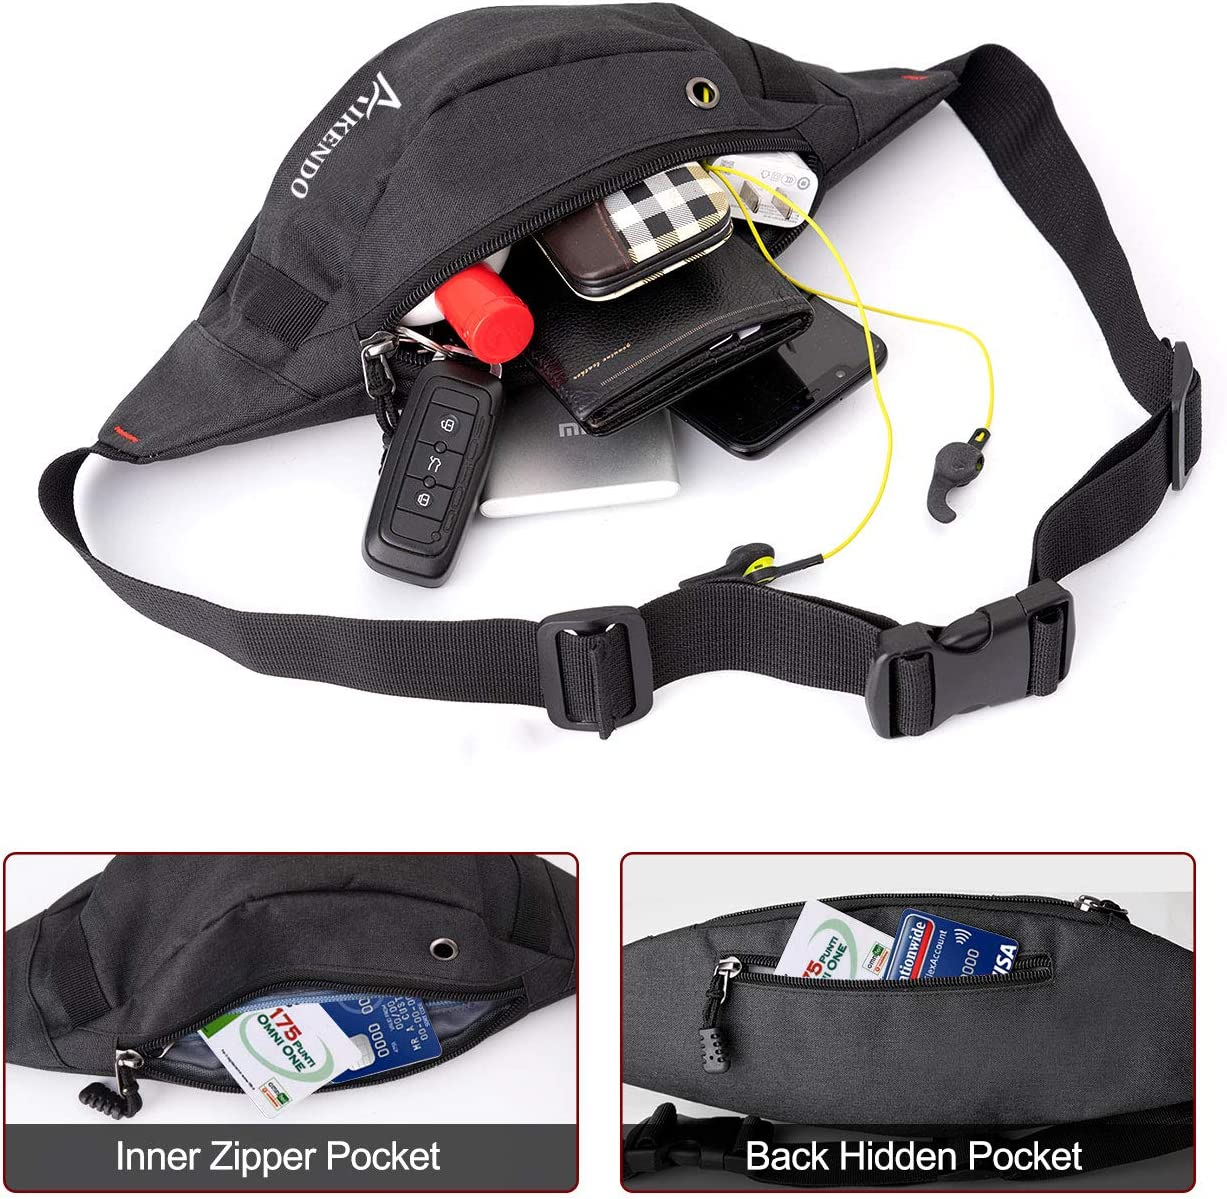 AIKENDO Fanny Pack for Men Women Easy Carry Any Phone Passport Waist Bag Pack for Travel Sports Running Hiking Cycling Wallet.